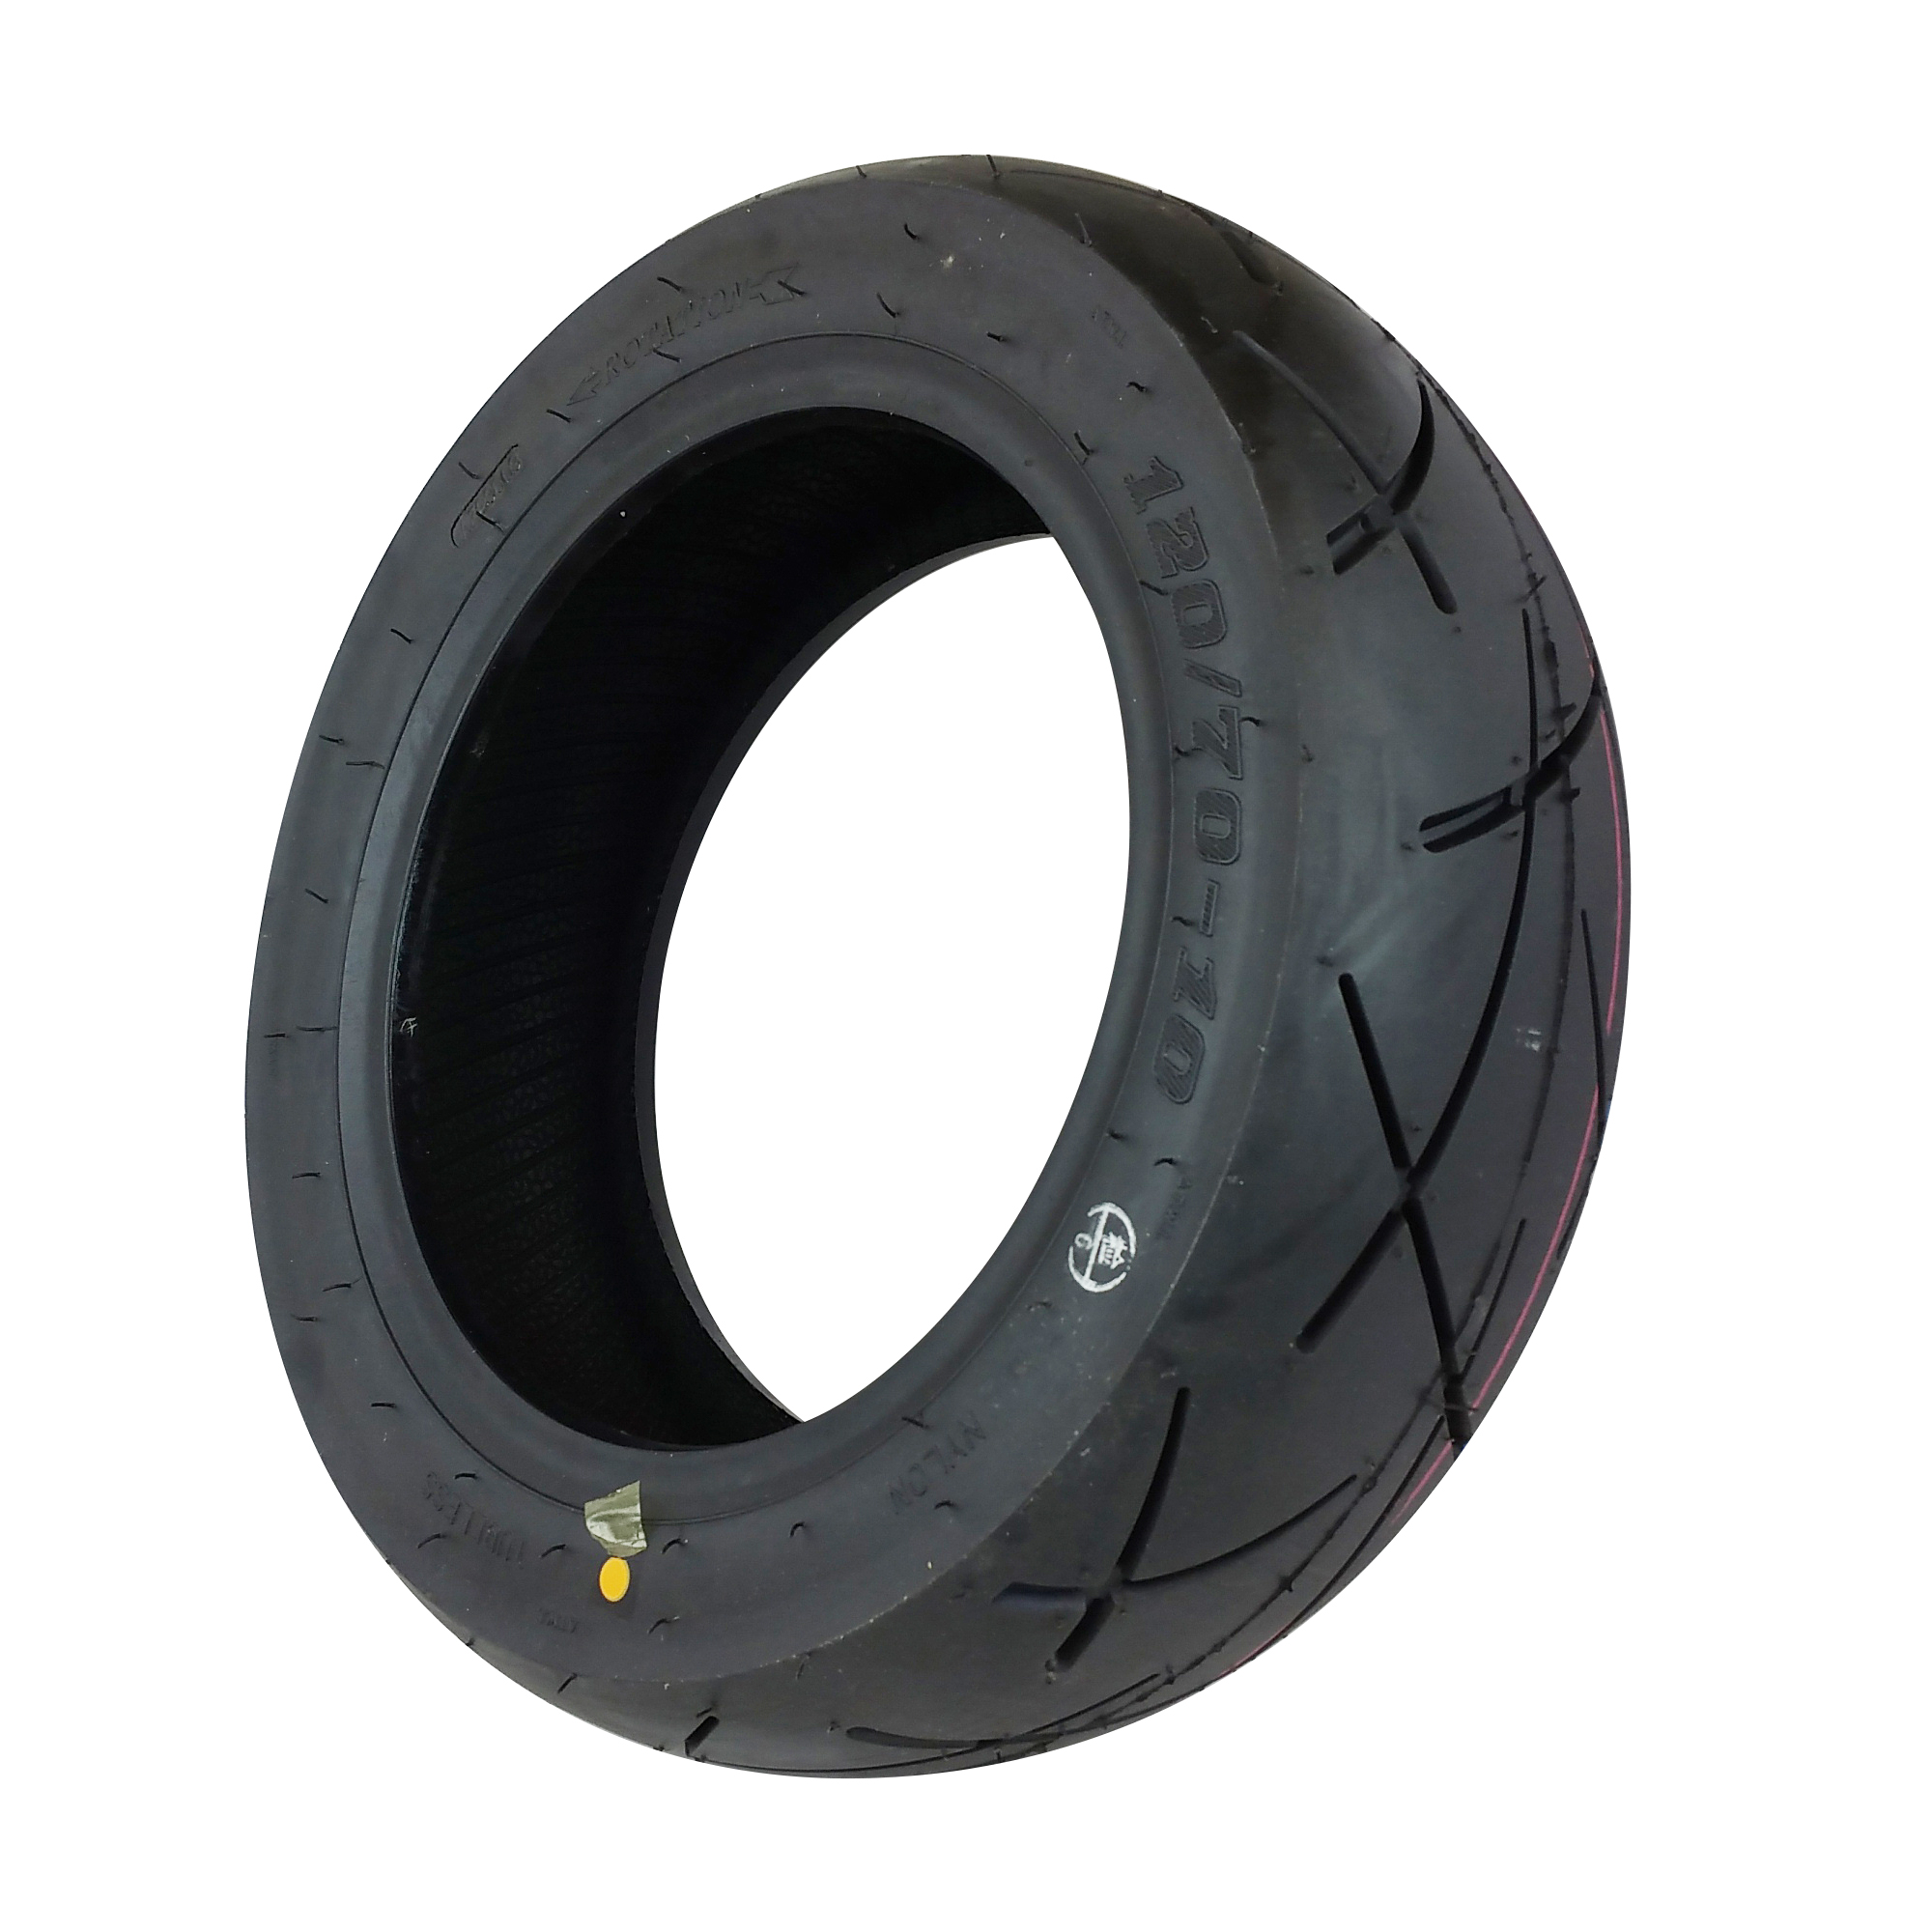 Tire 120/70-10 Tubeless Front/Rear Motorcycle Scooter Moped Ninja Thread